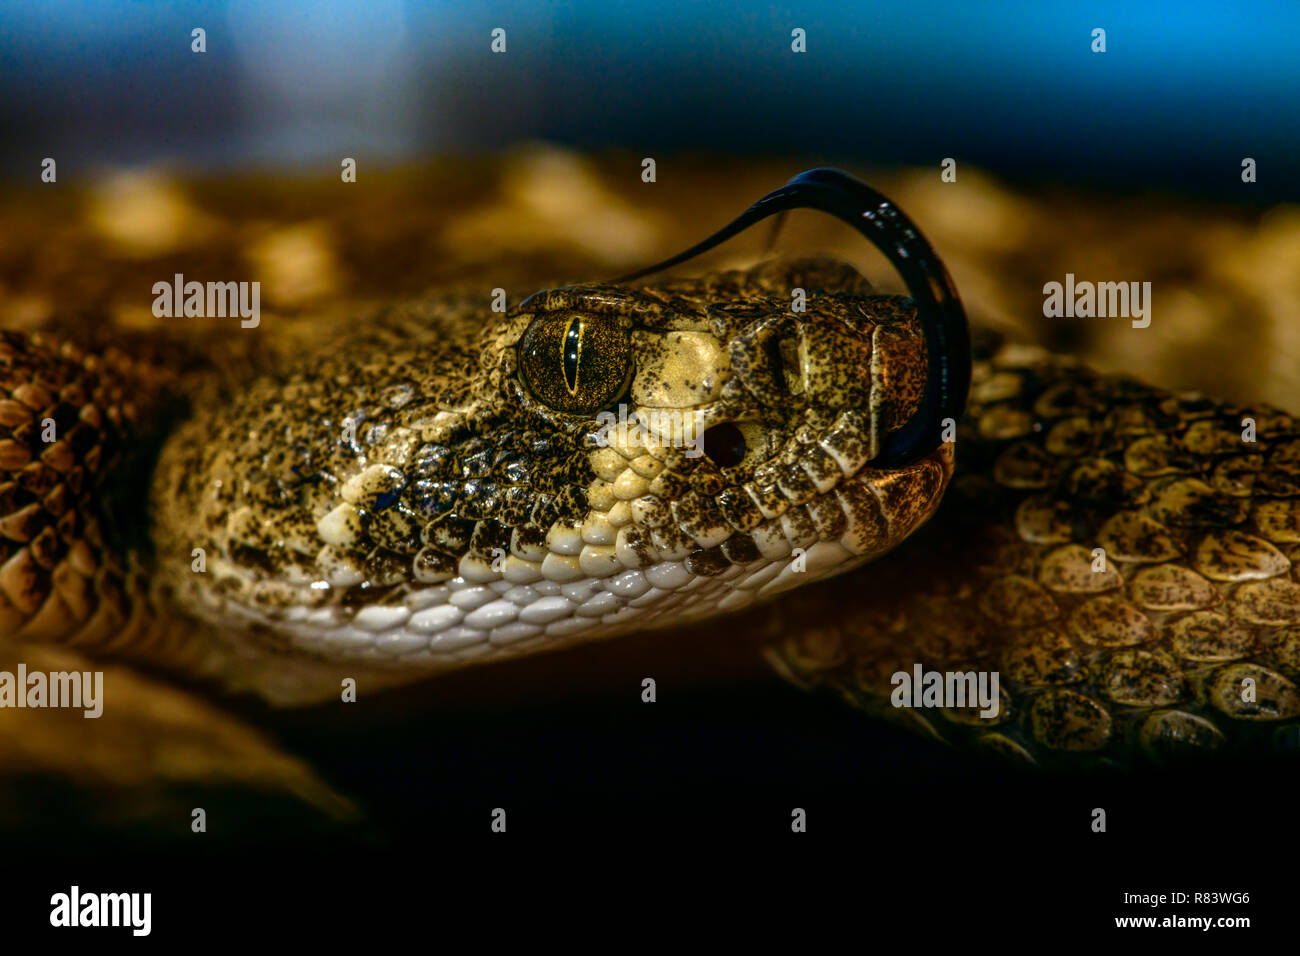 Western Diamondback Rattlesnake (Crotalus Atrox) close-up profile of head. Tongue curled over top of head. detailed. Stock Photo